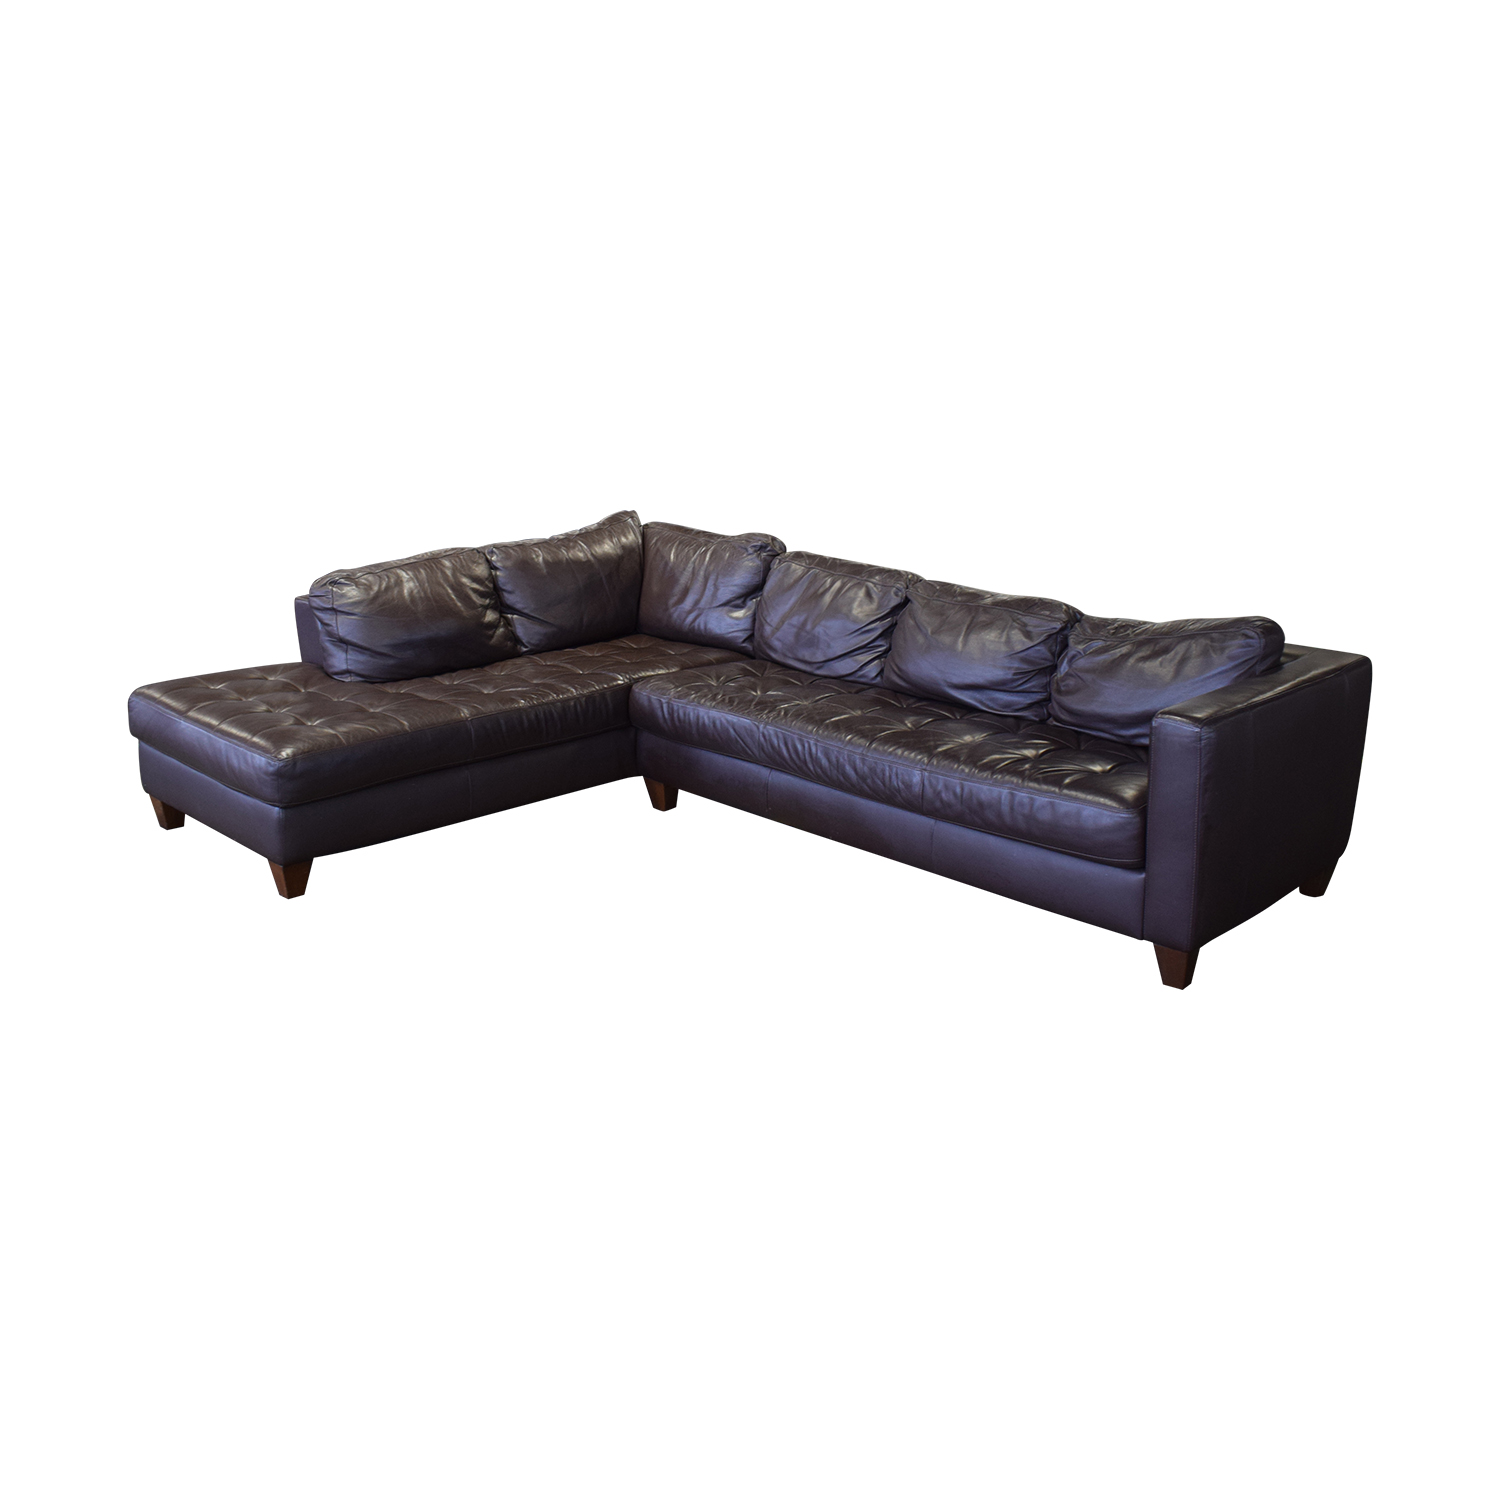 Natuzzi Editions Leather Sectional sale